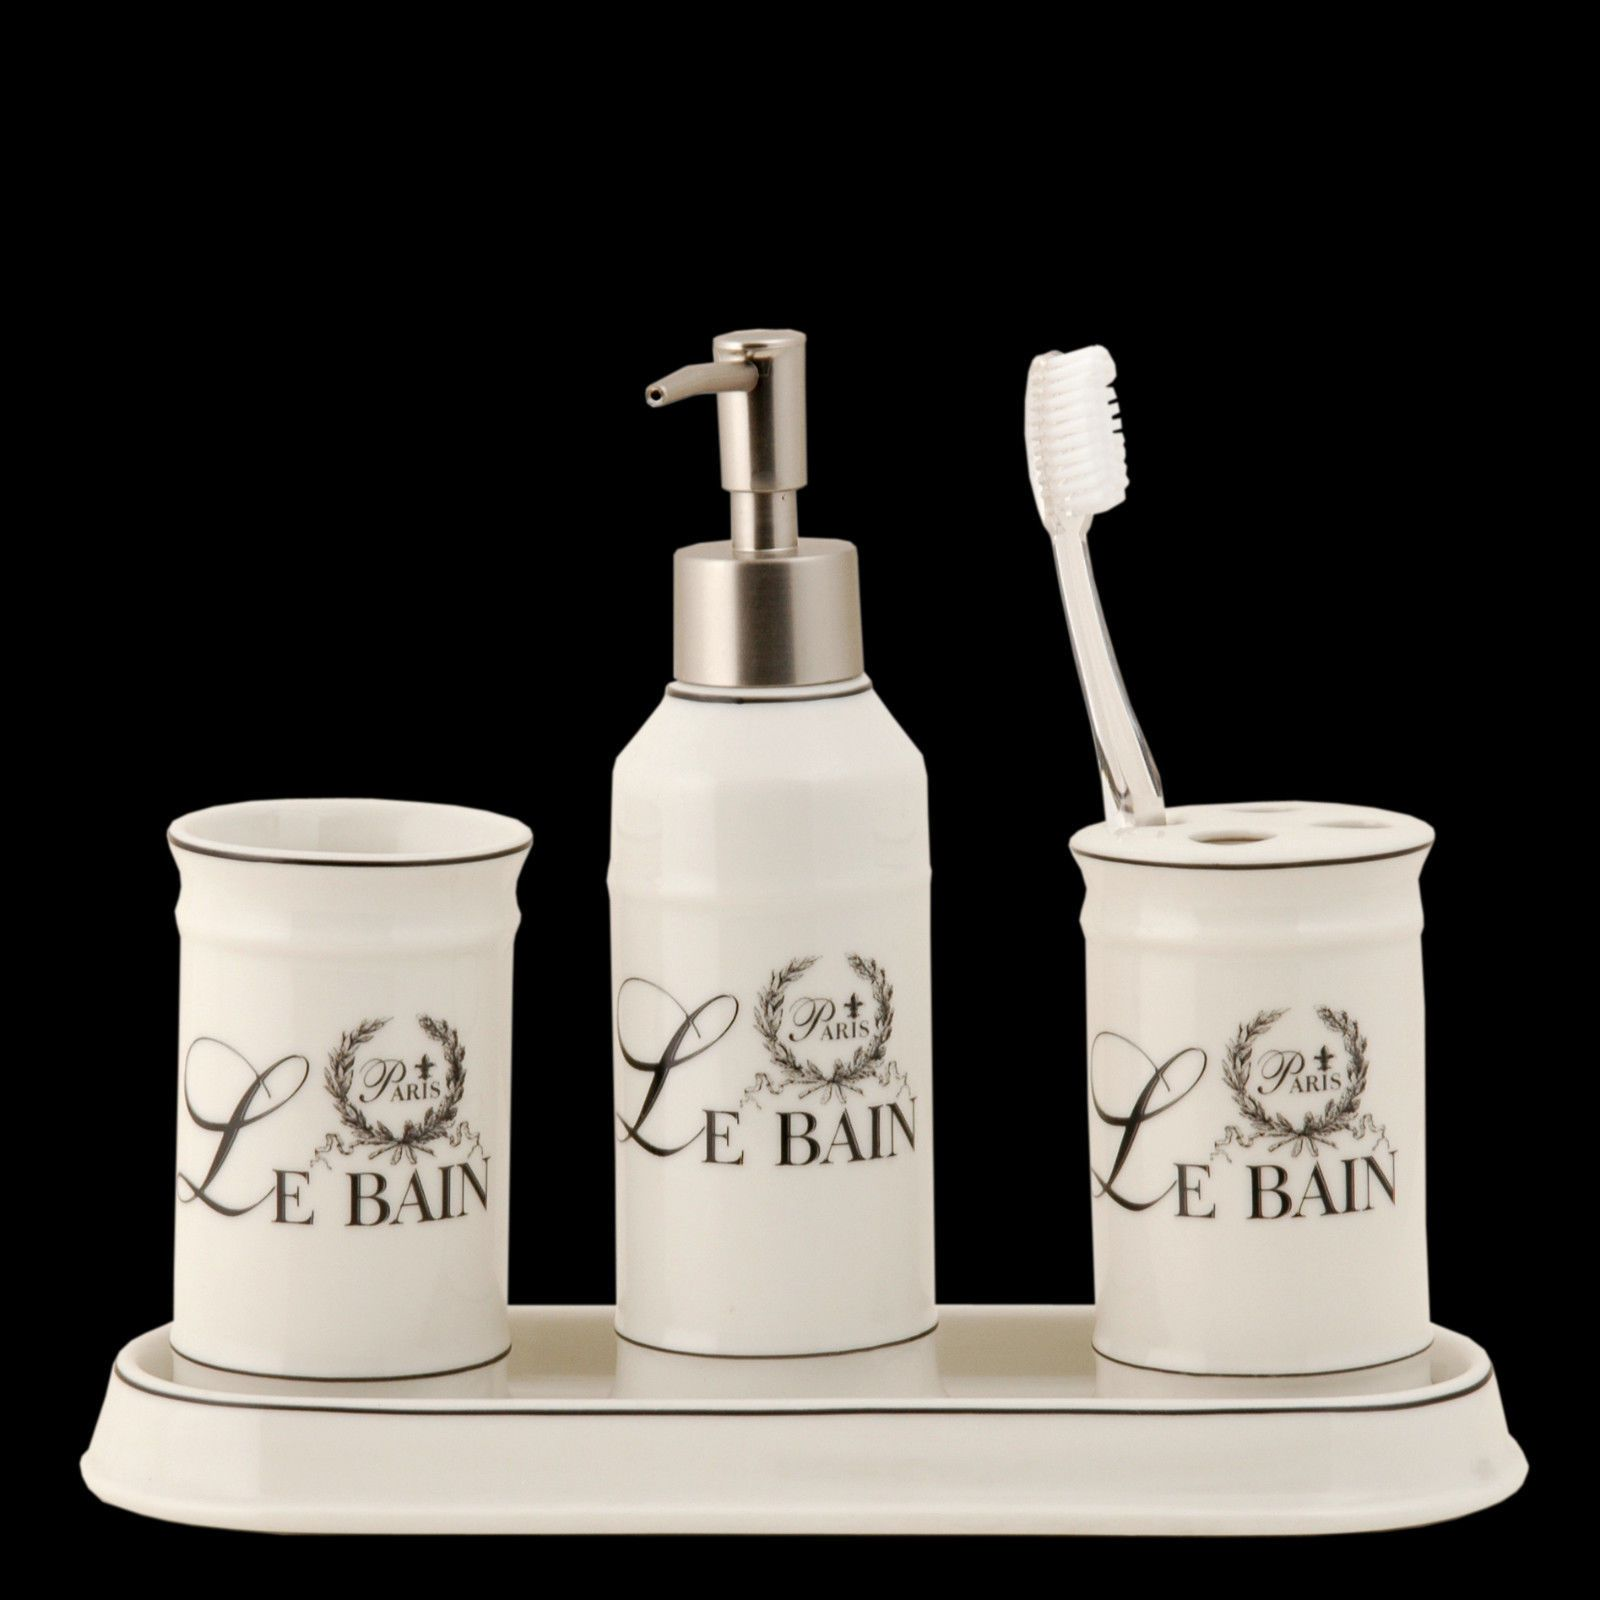 Le Bain Ceramic 4 Piece Bathroom Set W Soap Dispenser Toothbrush